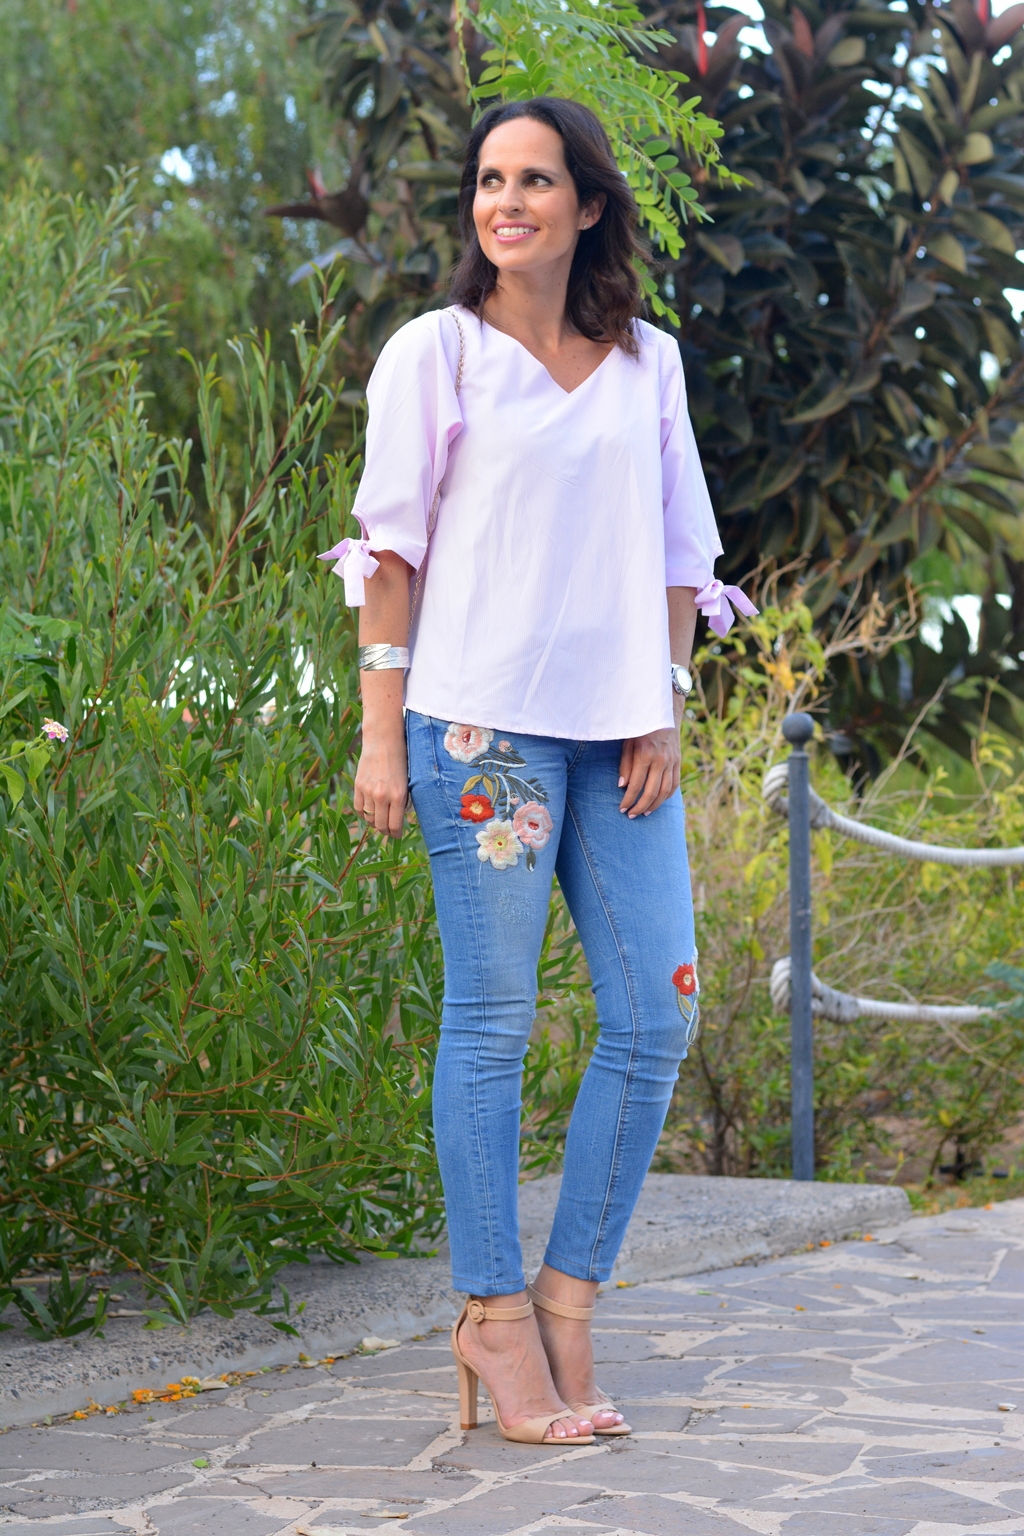 zara-embroidered-jeans-outfit